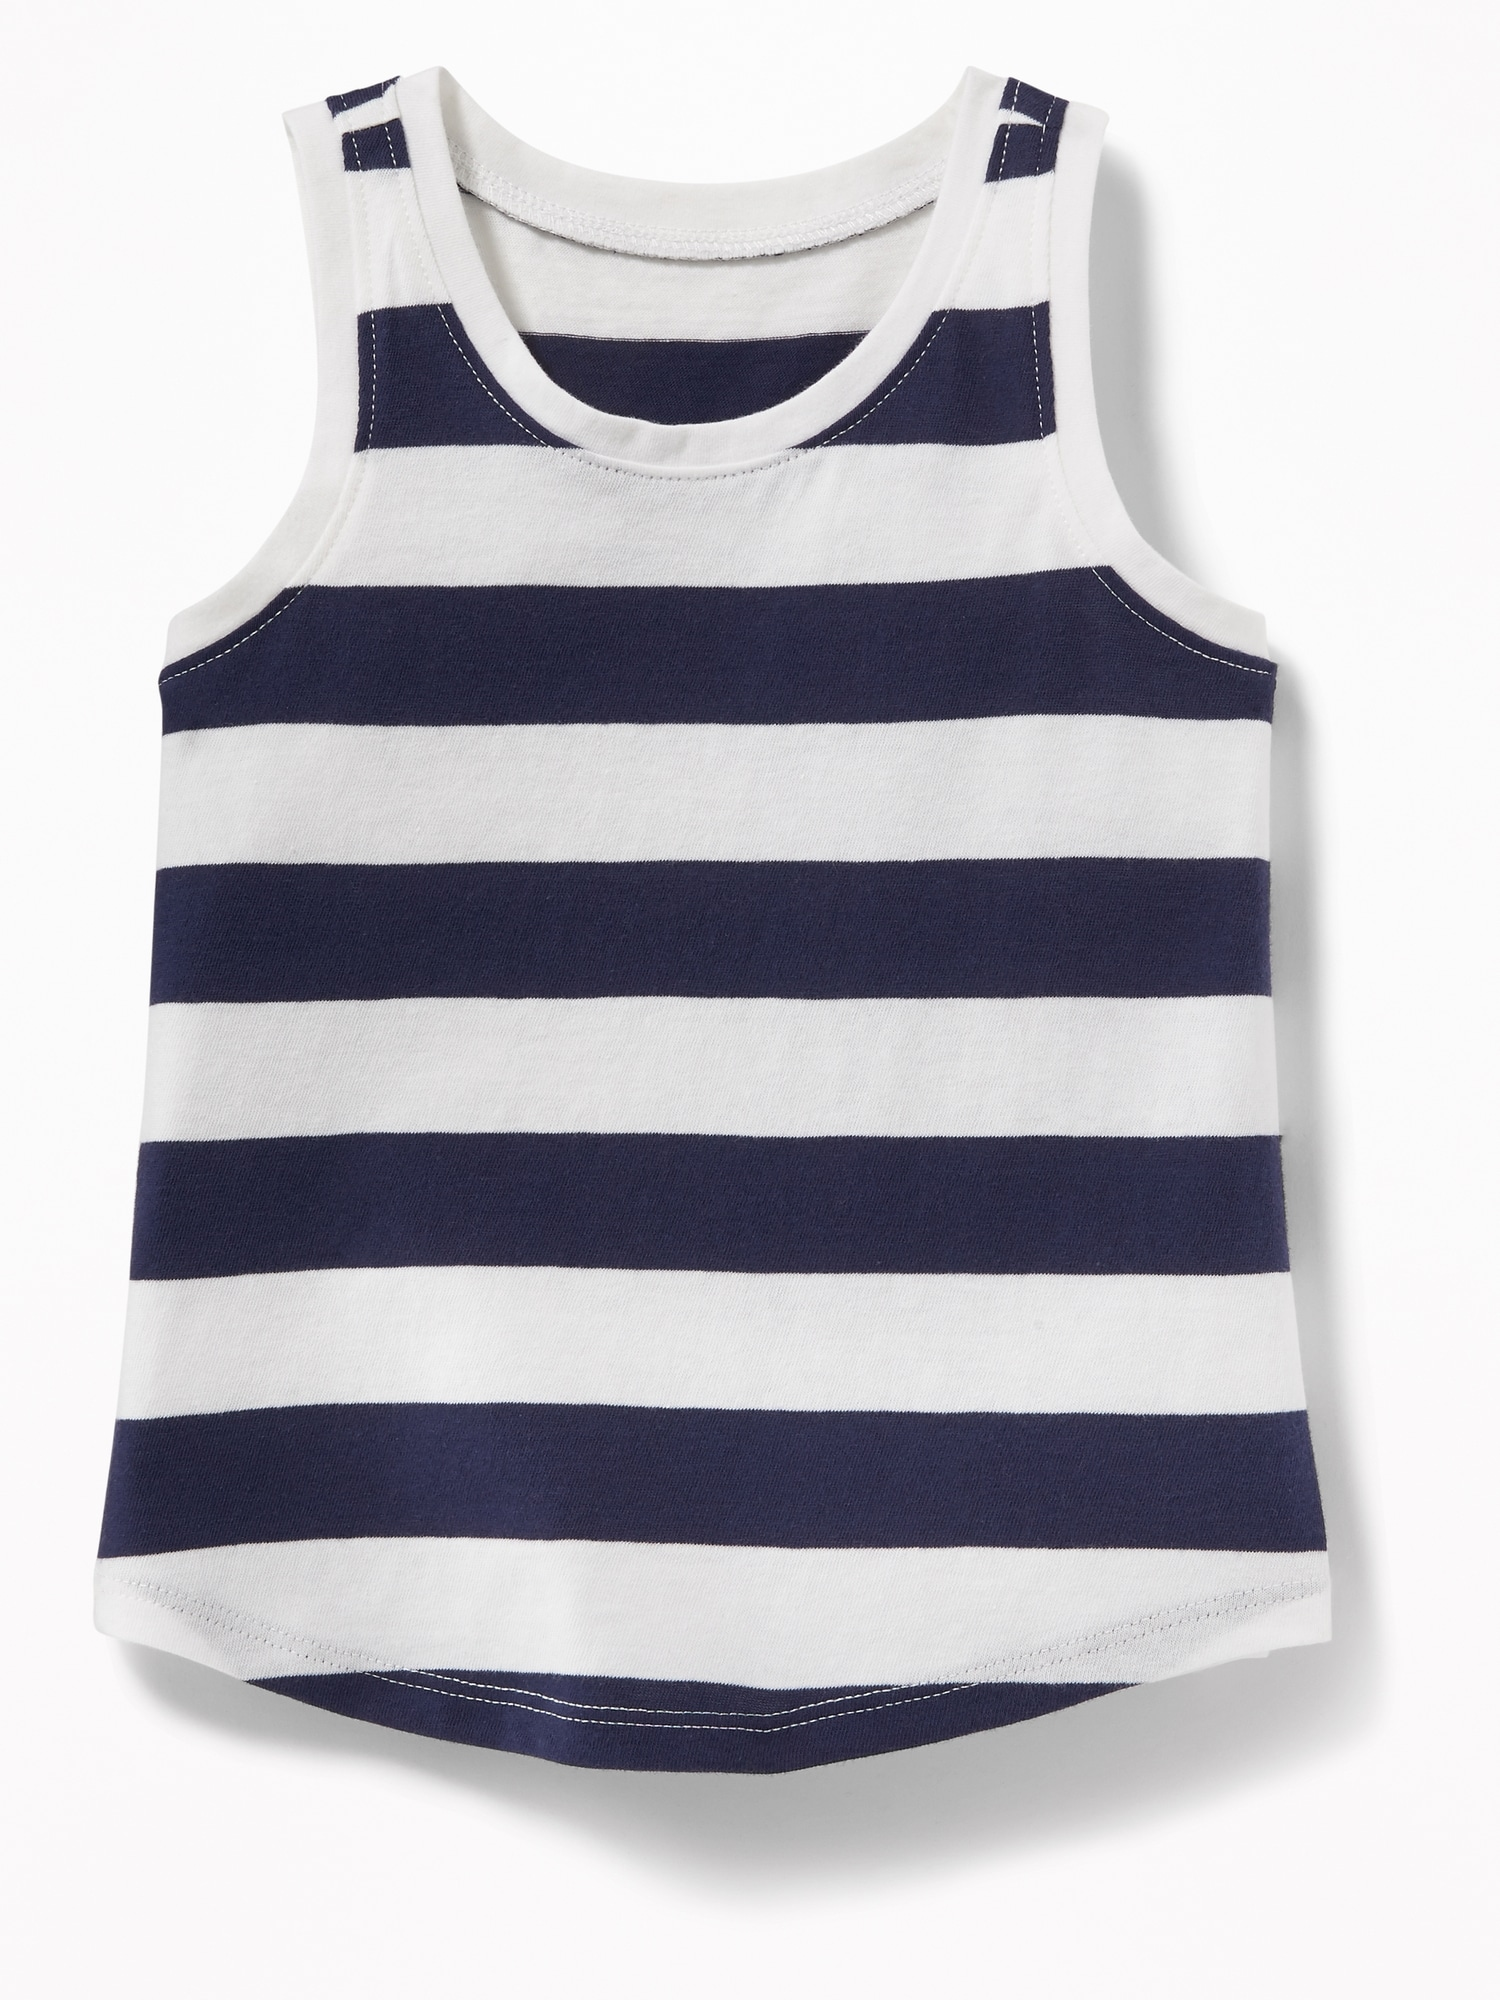 039ceeaeac6a4 Printed Jersey Tank for Toddler Girls